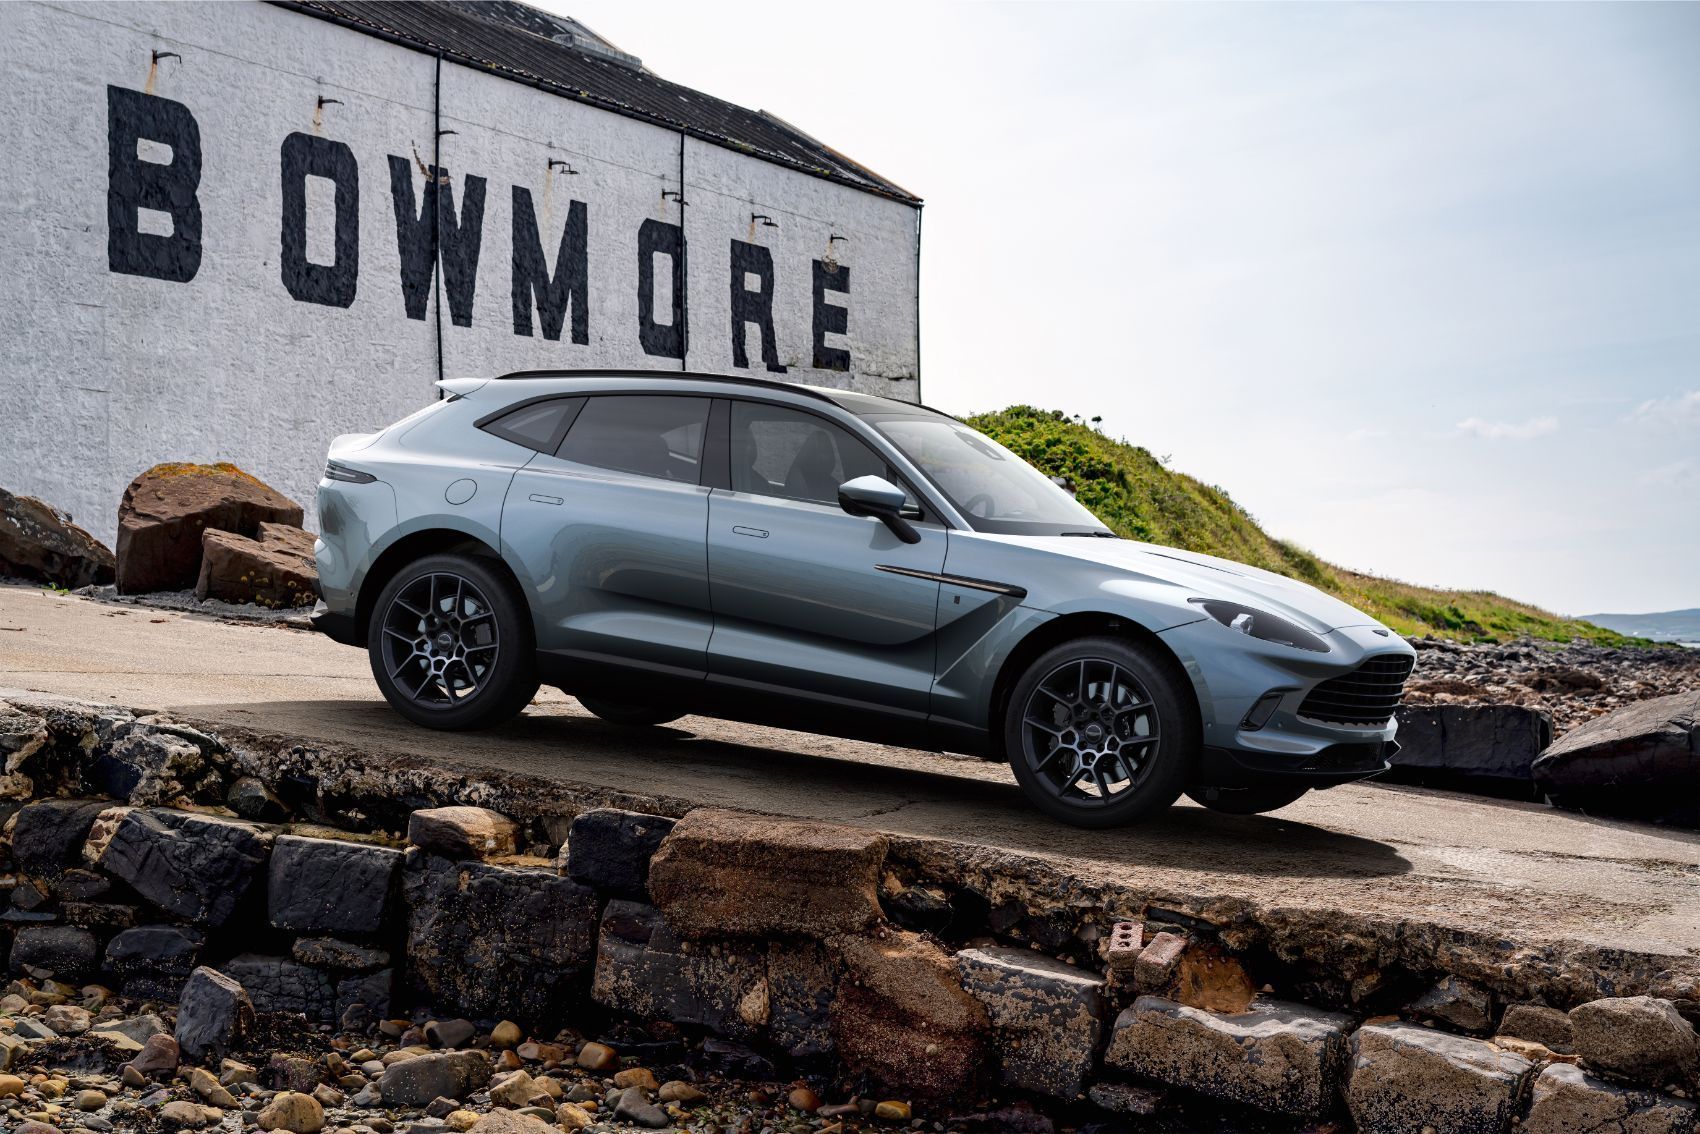 Aston Martin DBX Bowmore Edition: Limited DBX Includes Tour of Scottish Countryside & Islay Woollen Mill